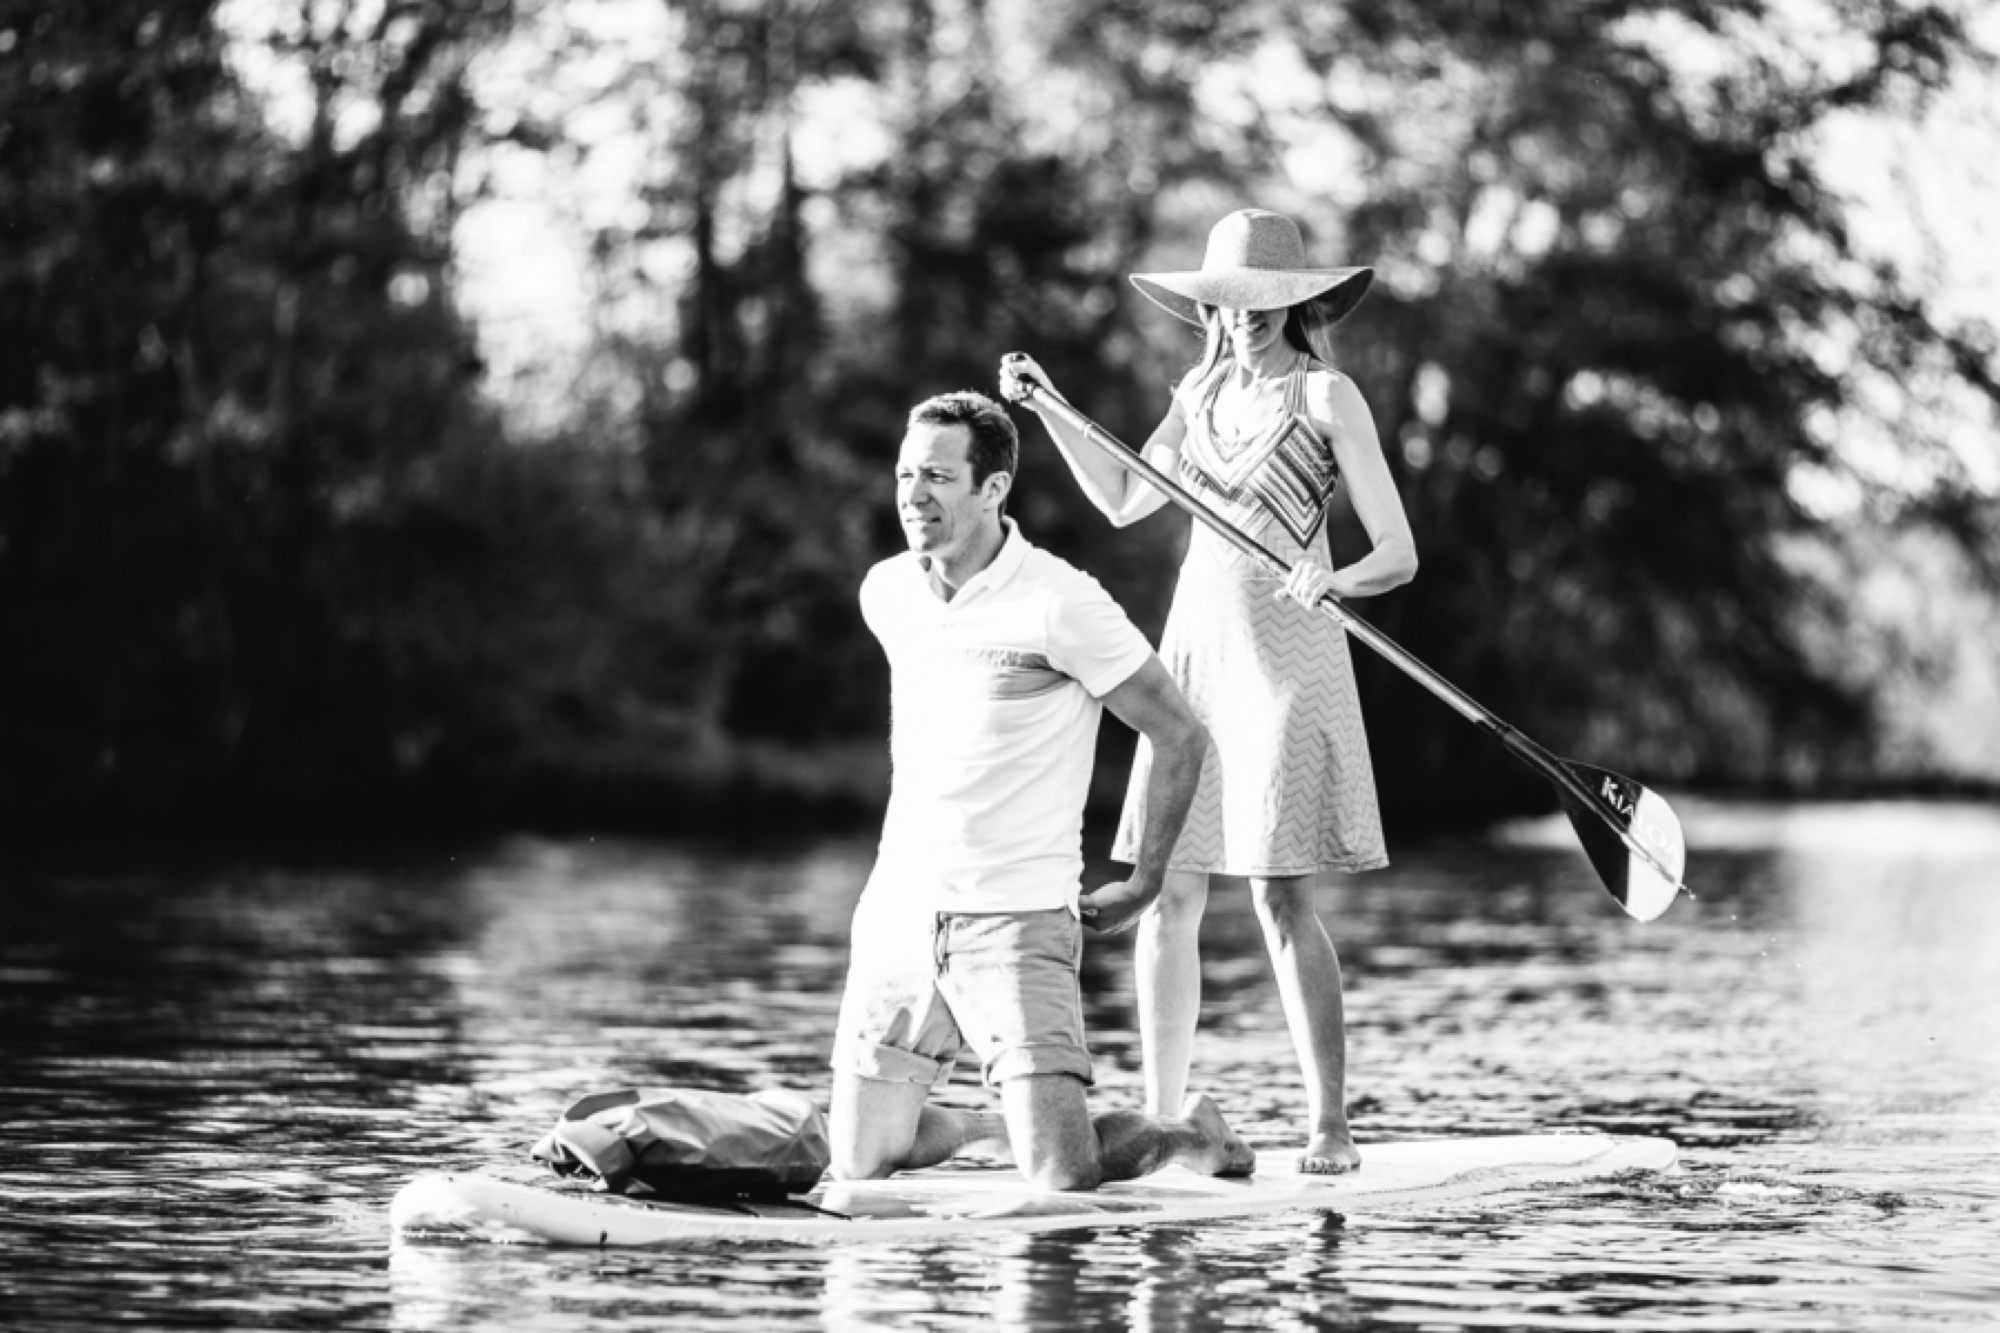 Chattahoochee River Paddle Board Engagement Session, ideas for engagement pictures, what to wear for  engagement pictures